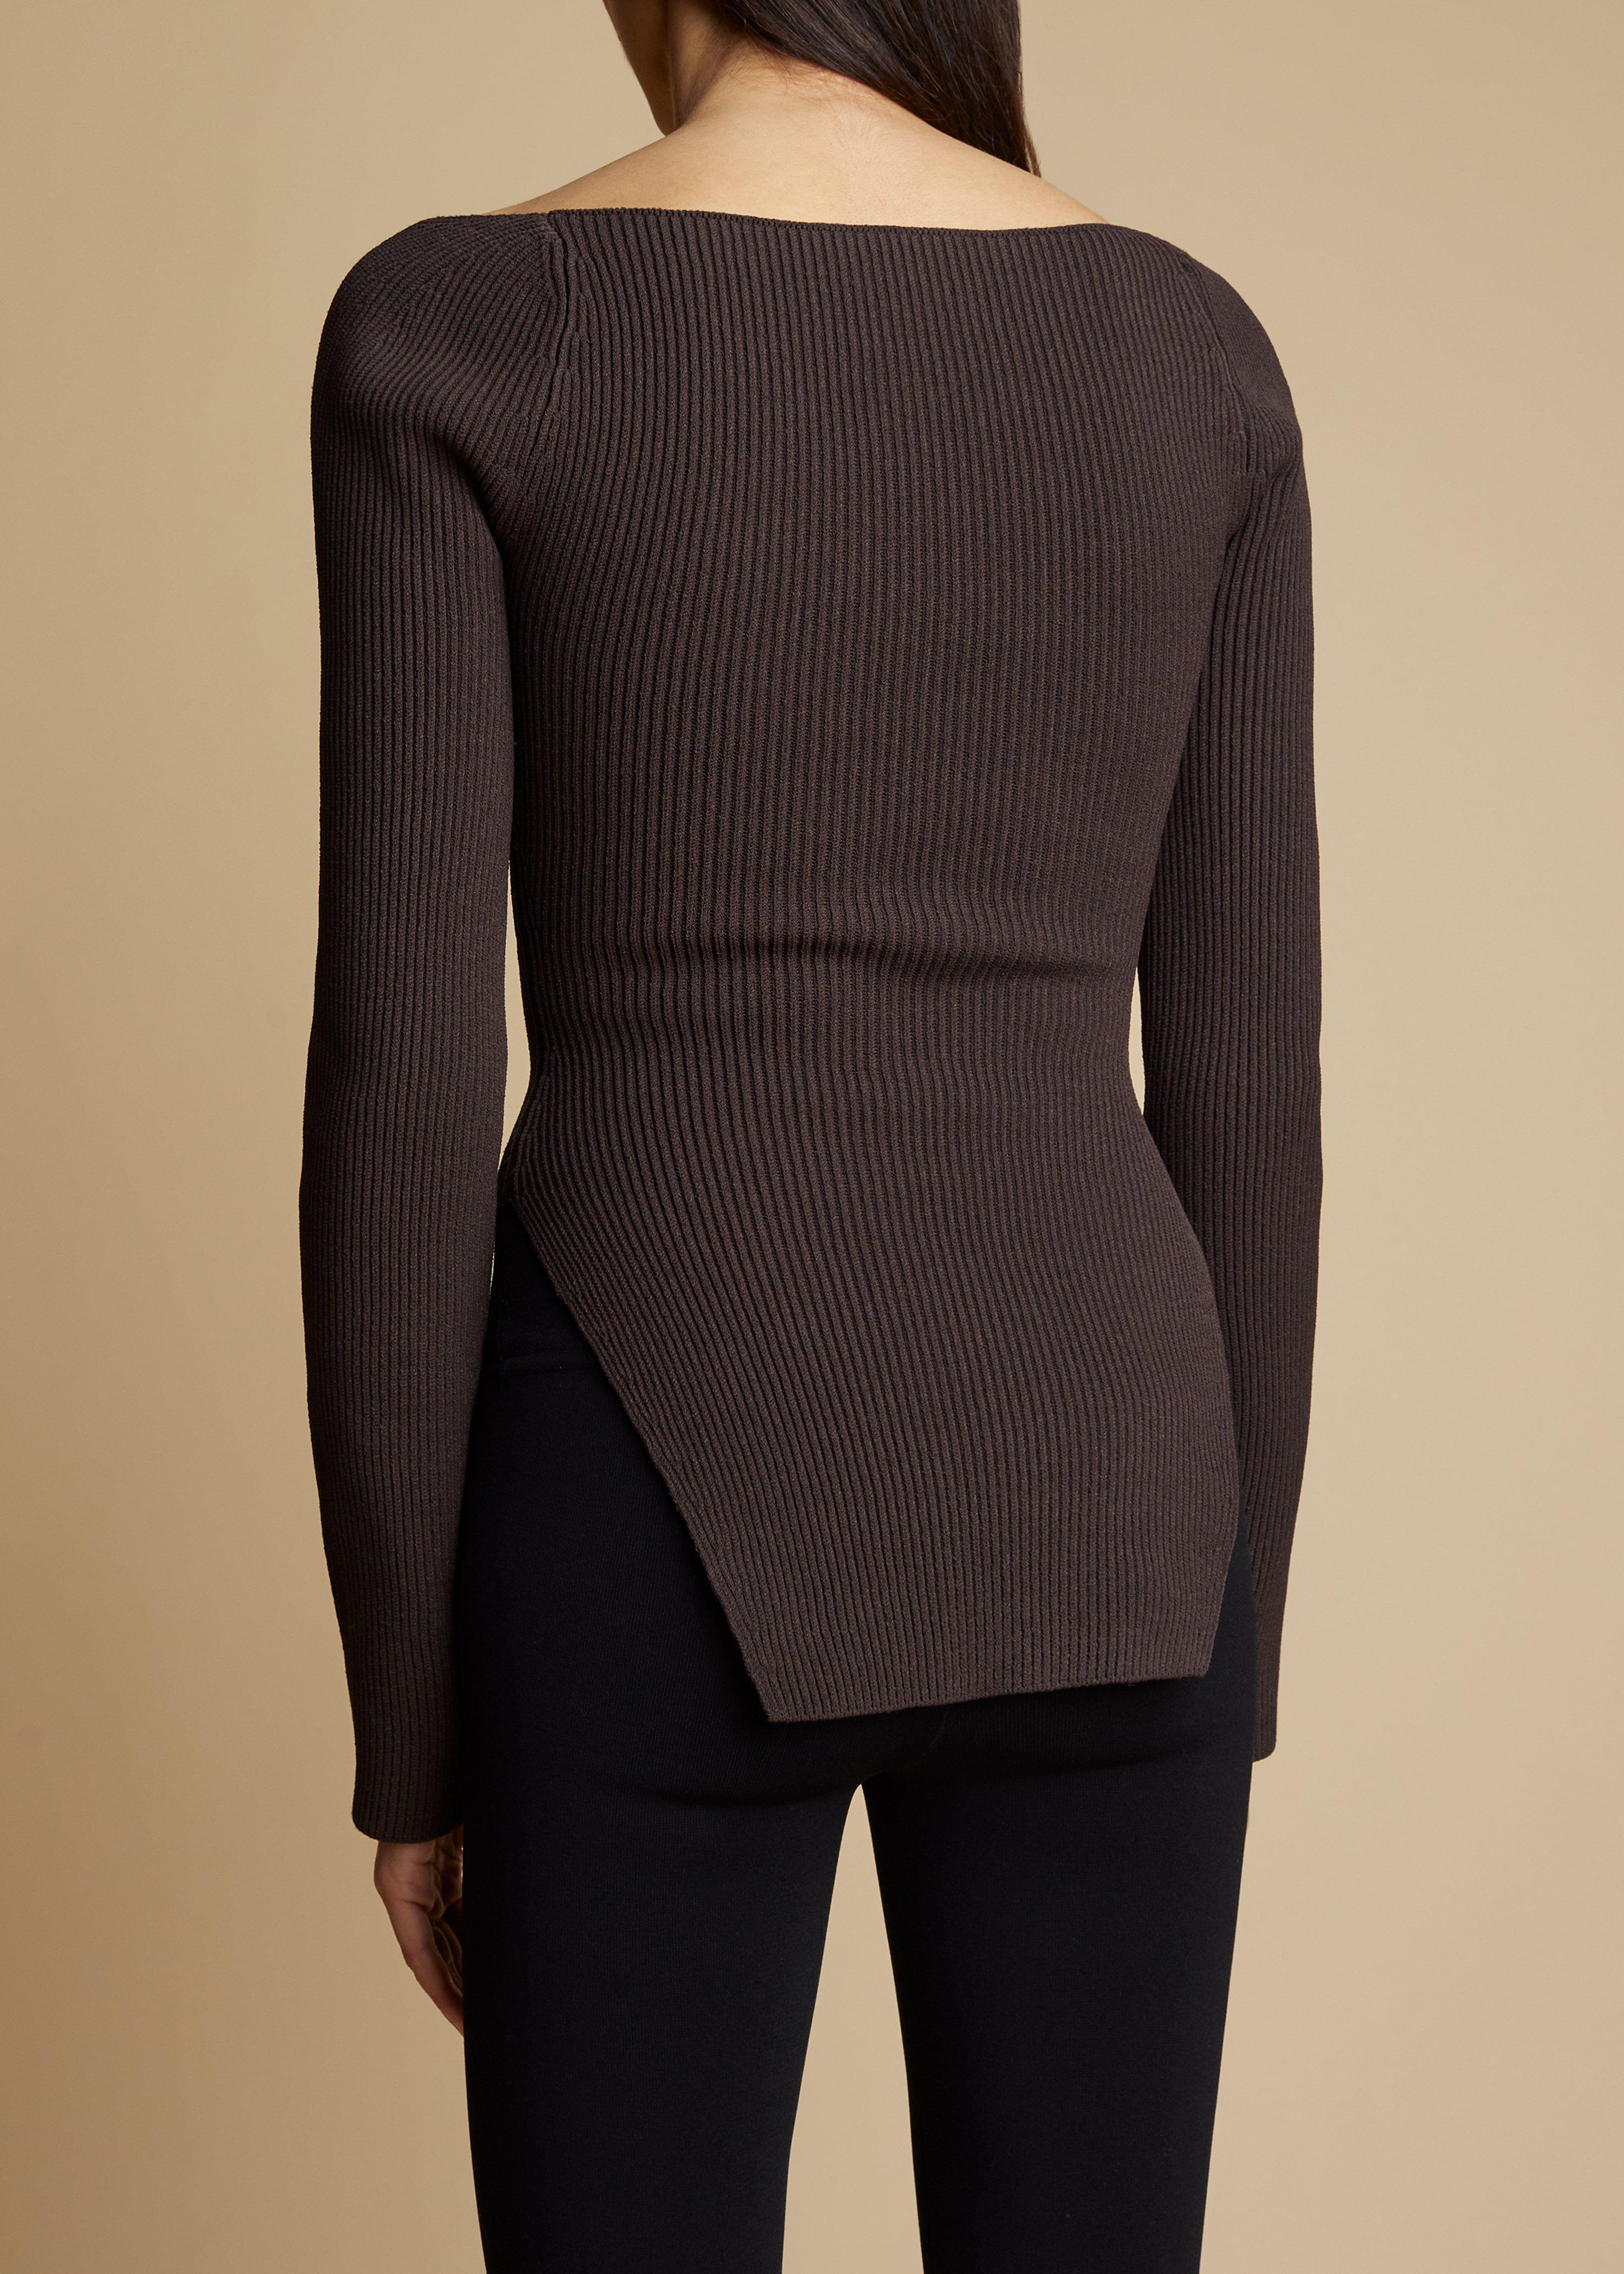 The Maddy Top in Chestnut 2